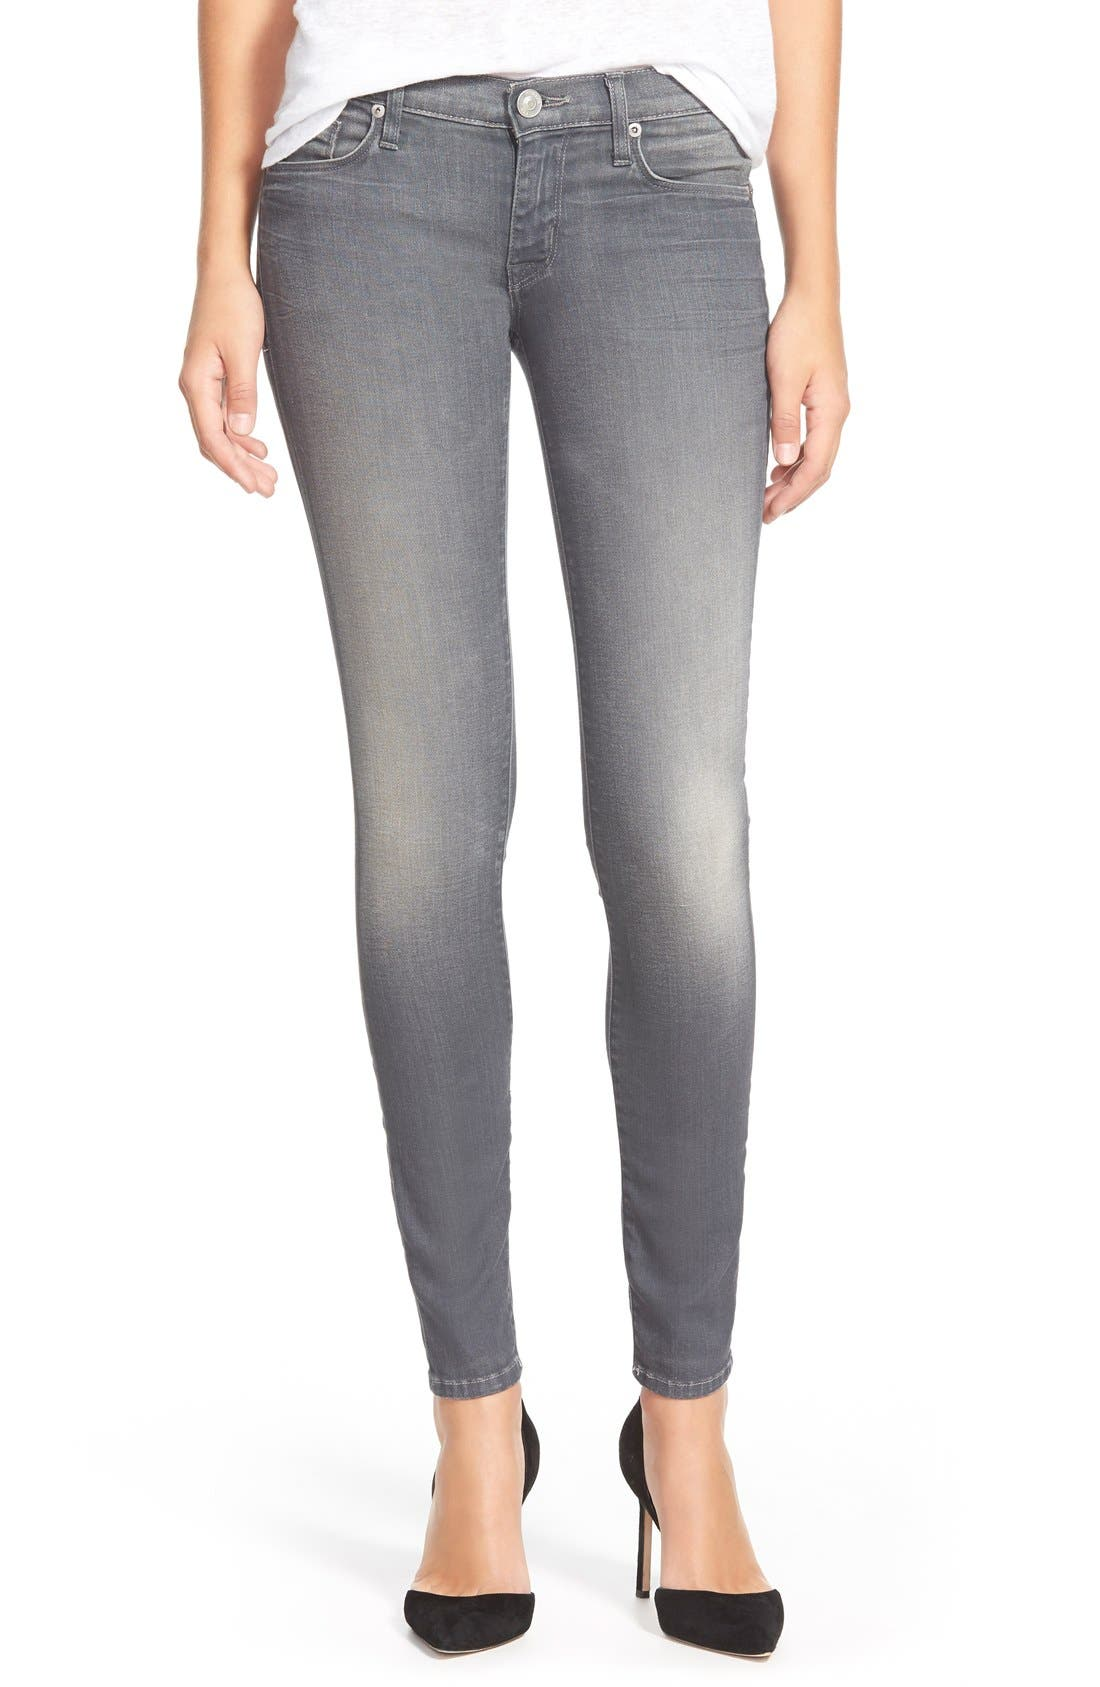 Alternate Image 1 Selected - Hudson Jeans 'Krista' Ankle Skinny Jeans (Wreckless)